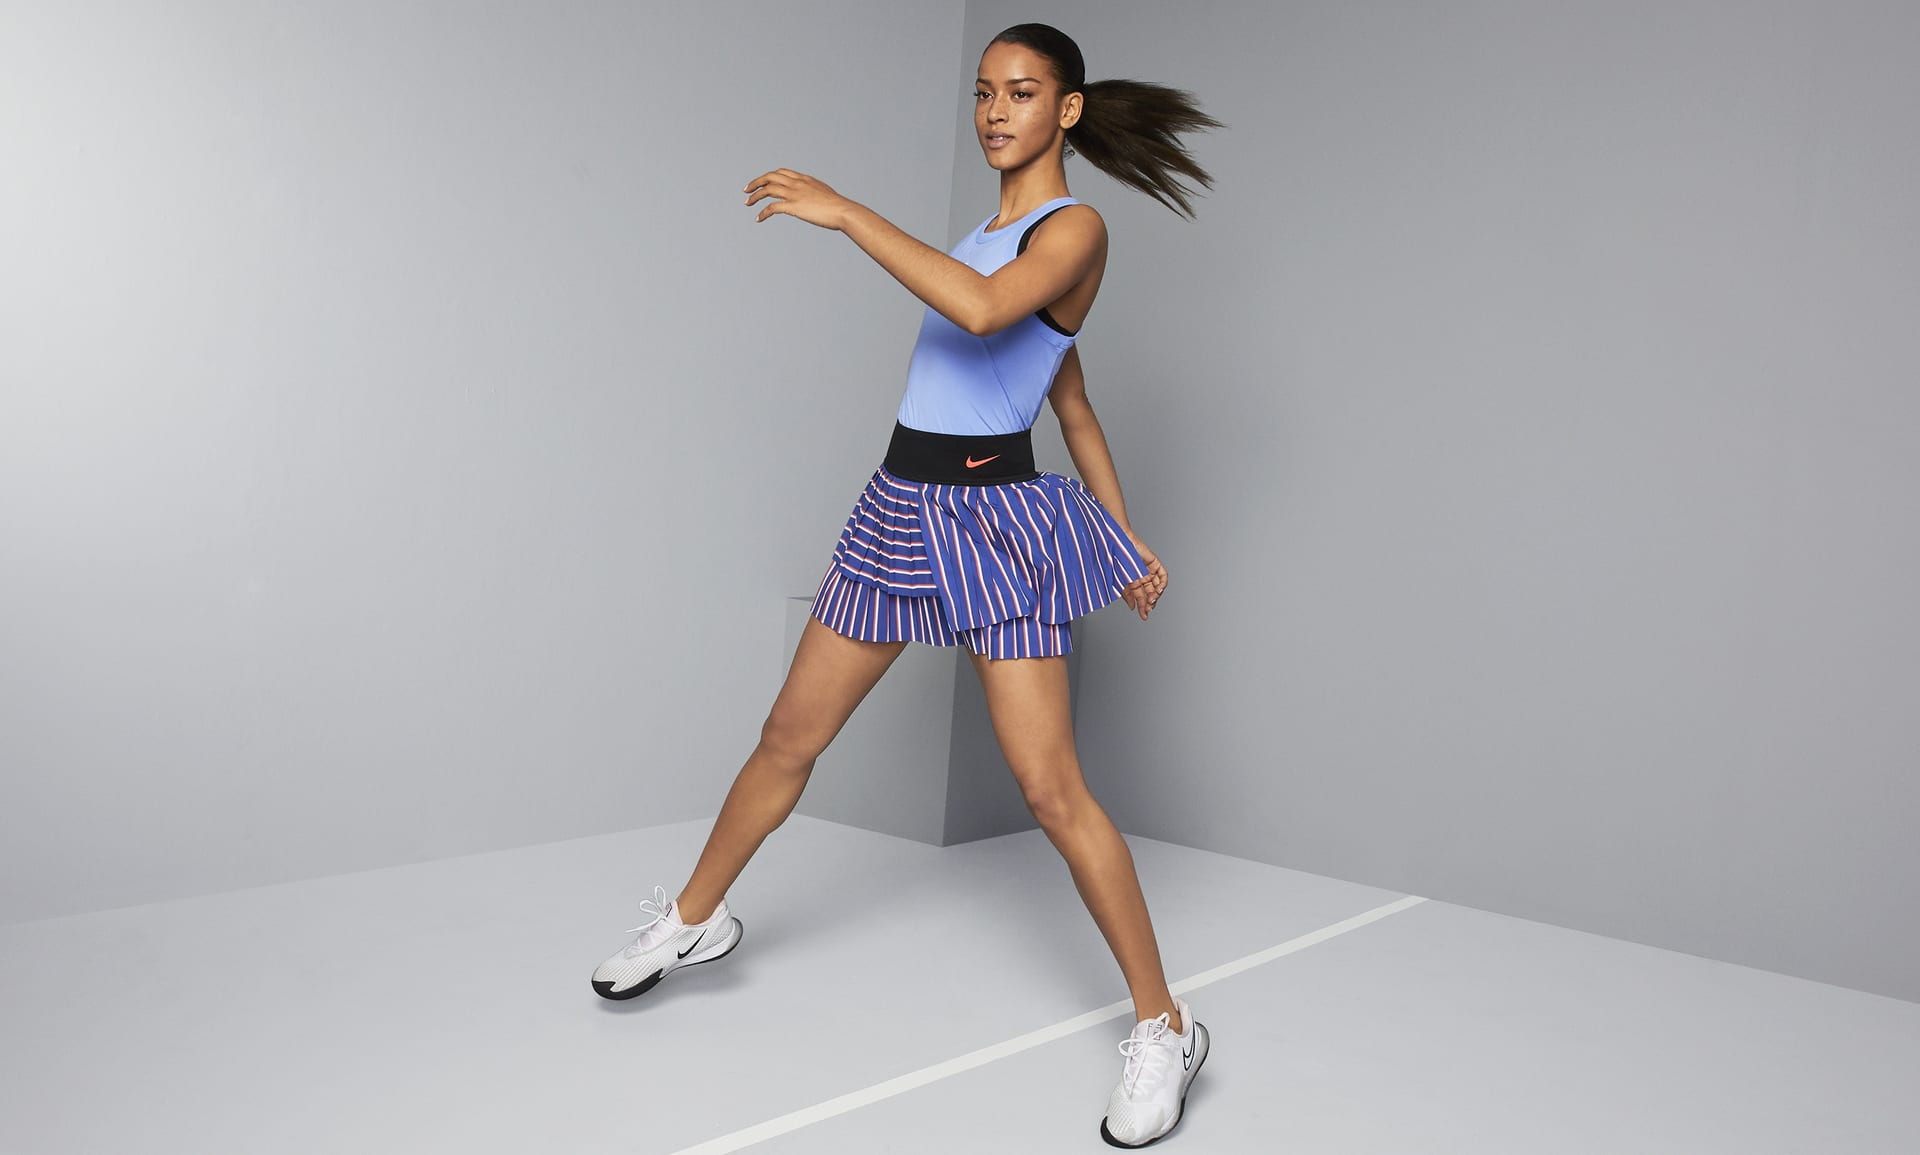 Tennis skirts are trending this summer, according to Lyst.